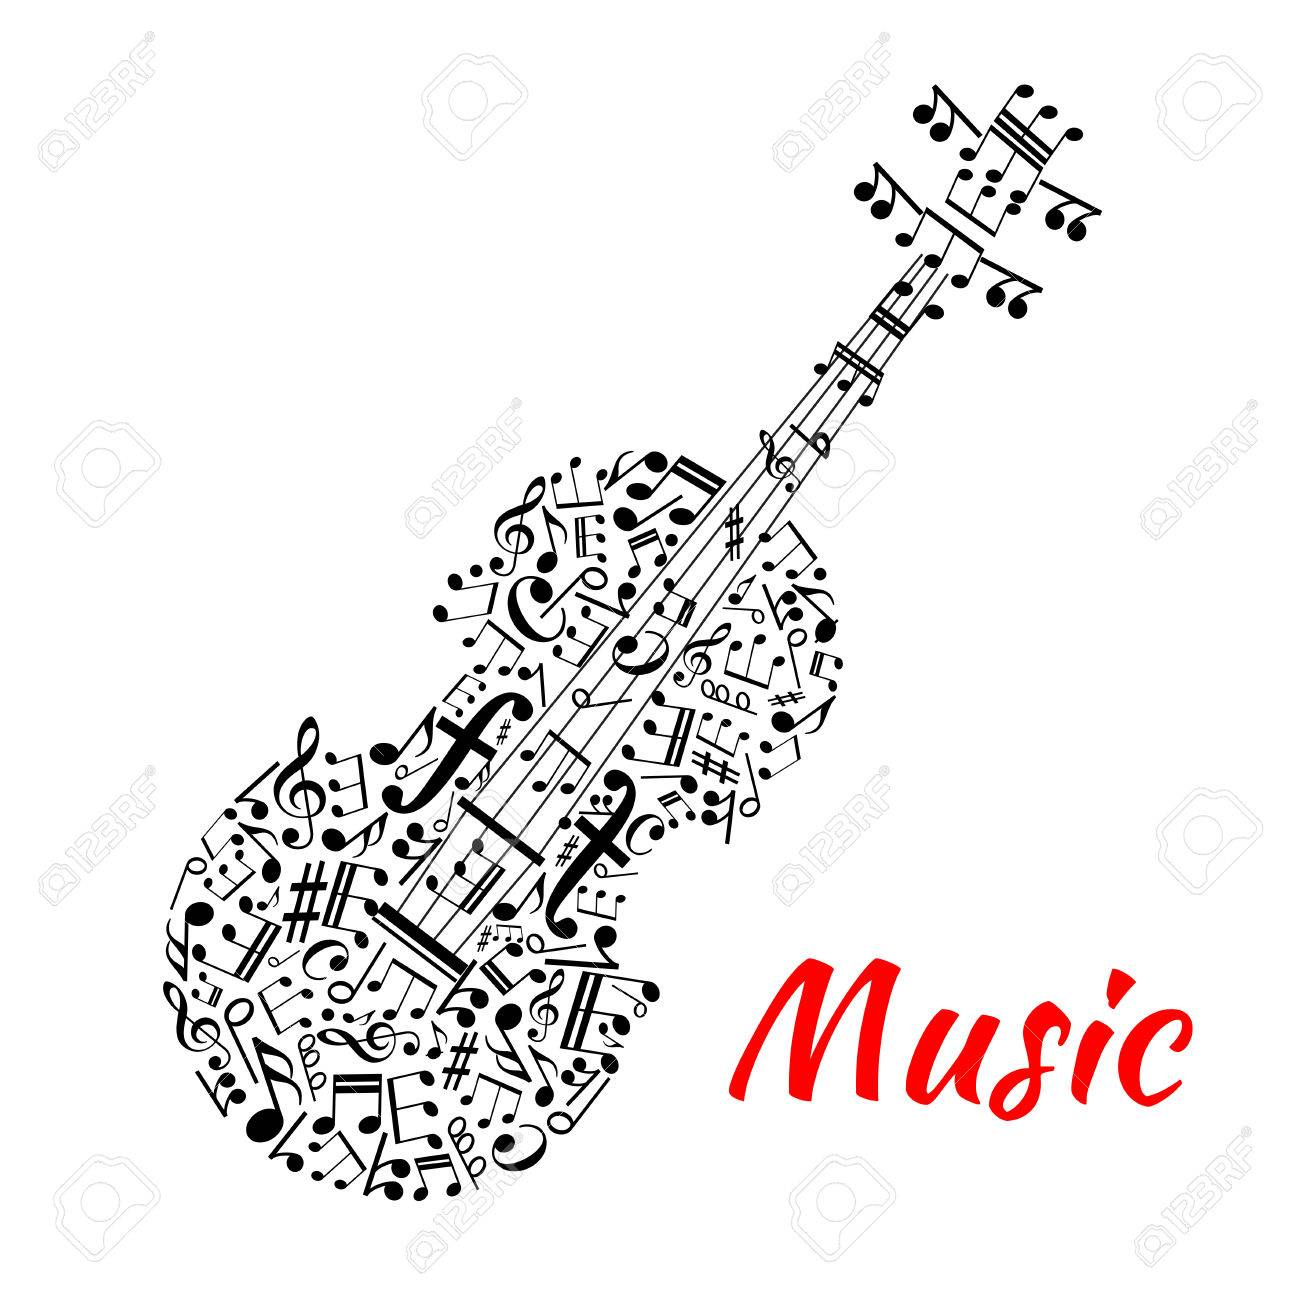 Musical notation symbols and marks arranged into a shape of violin musical notation symbols and marks arranged into a shape of violin with fingerboard and strings made biocorpaavc